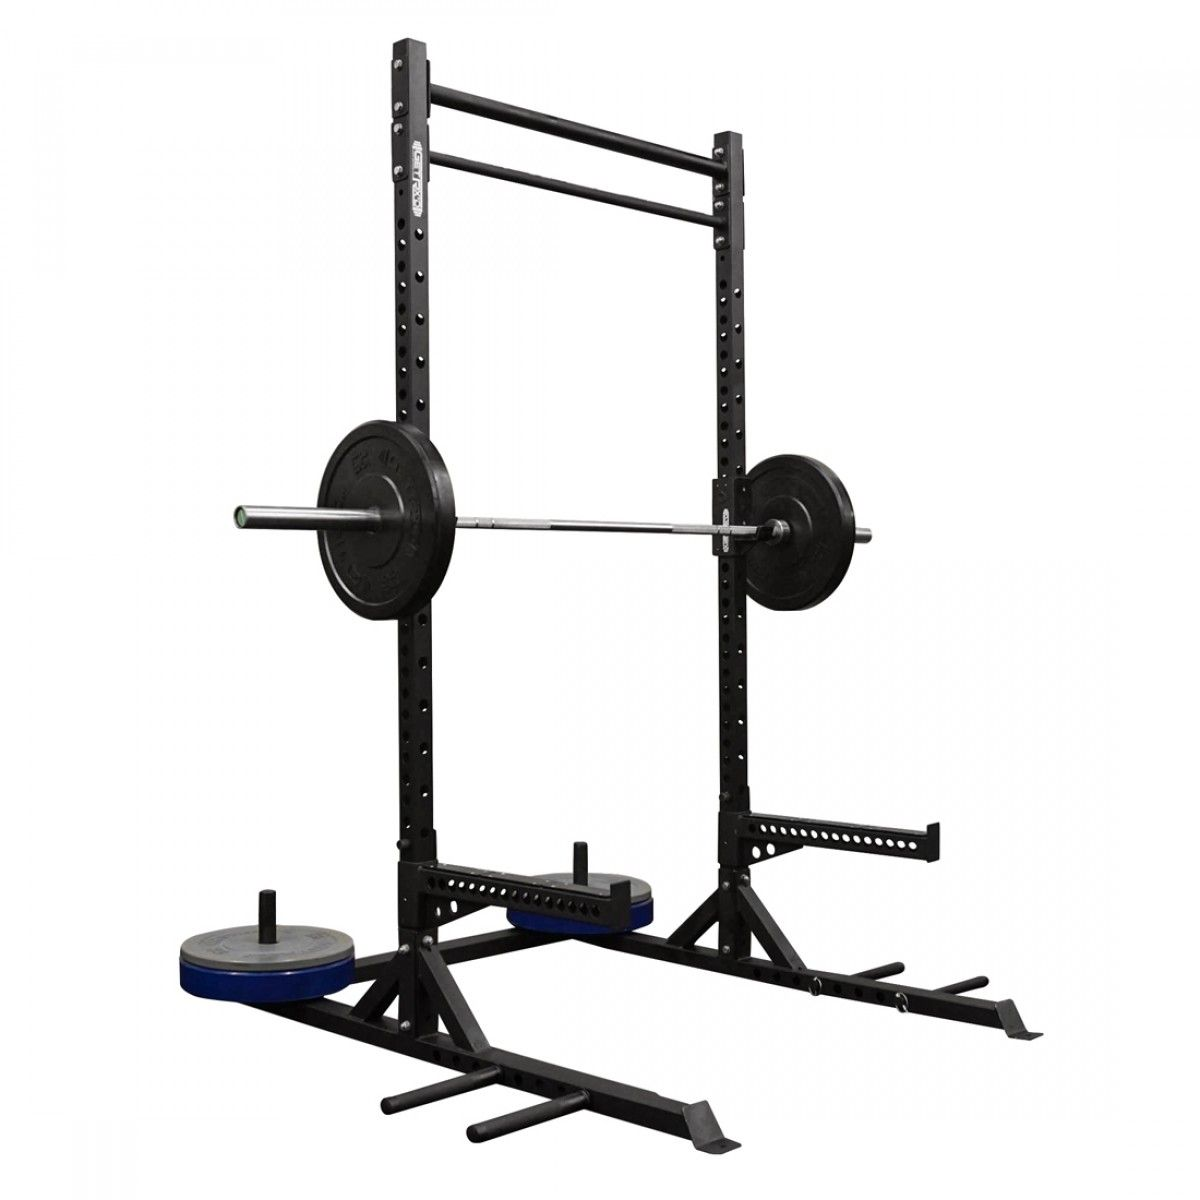 Swell Getrxd Com 710 Guillotine Squat Rack And Pull Up Bar Bralicious Painted Fabric Chair Ideas Braliciousco